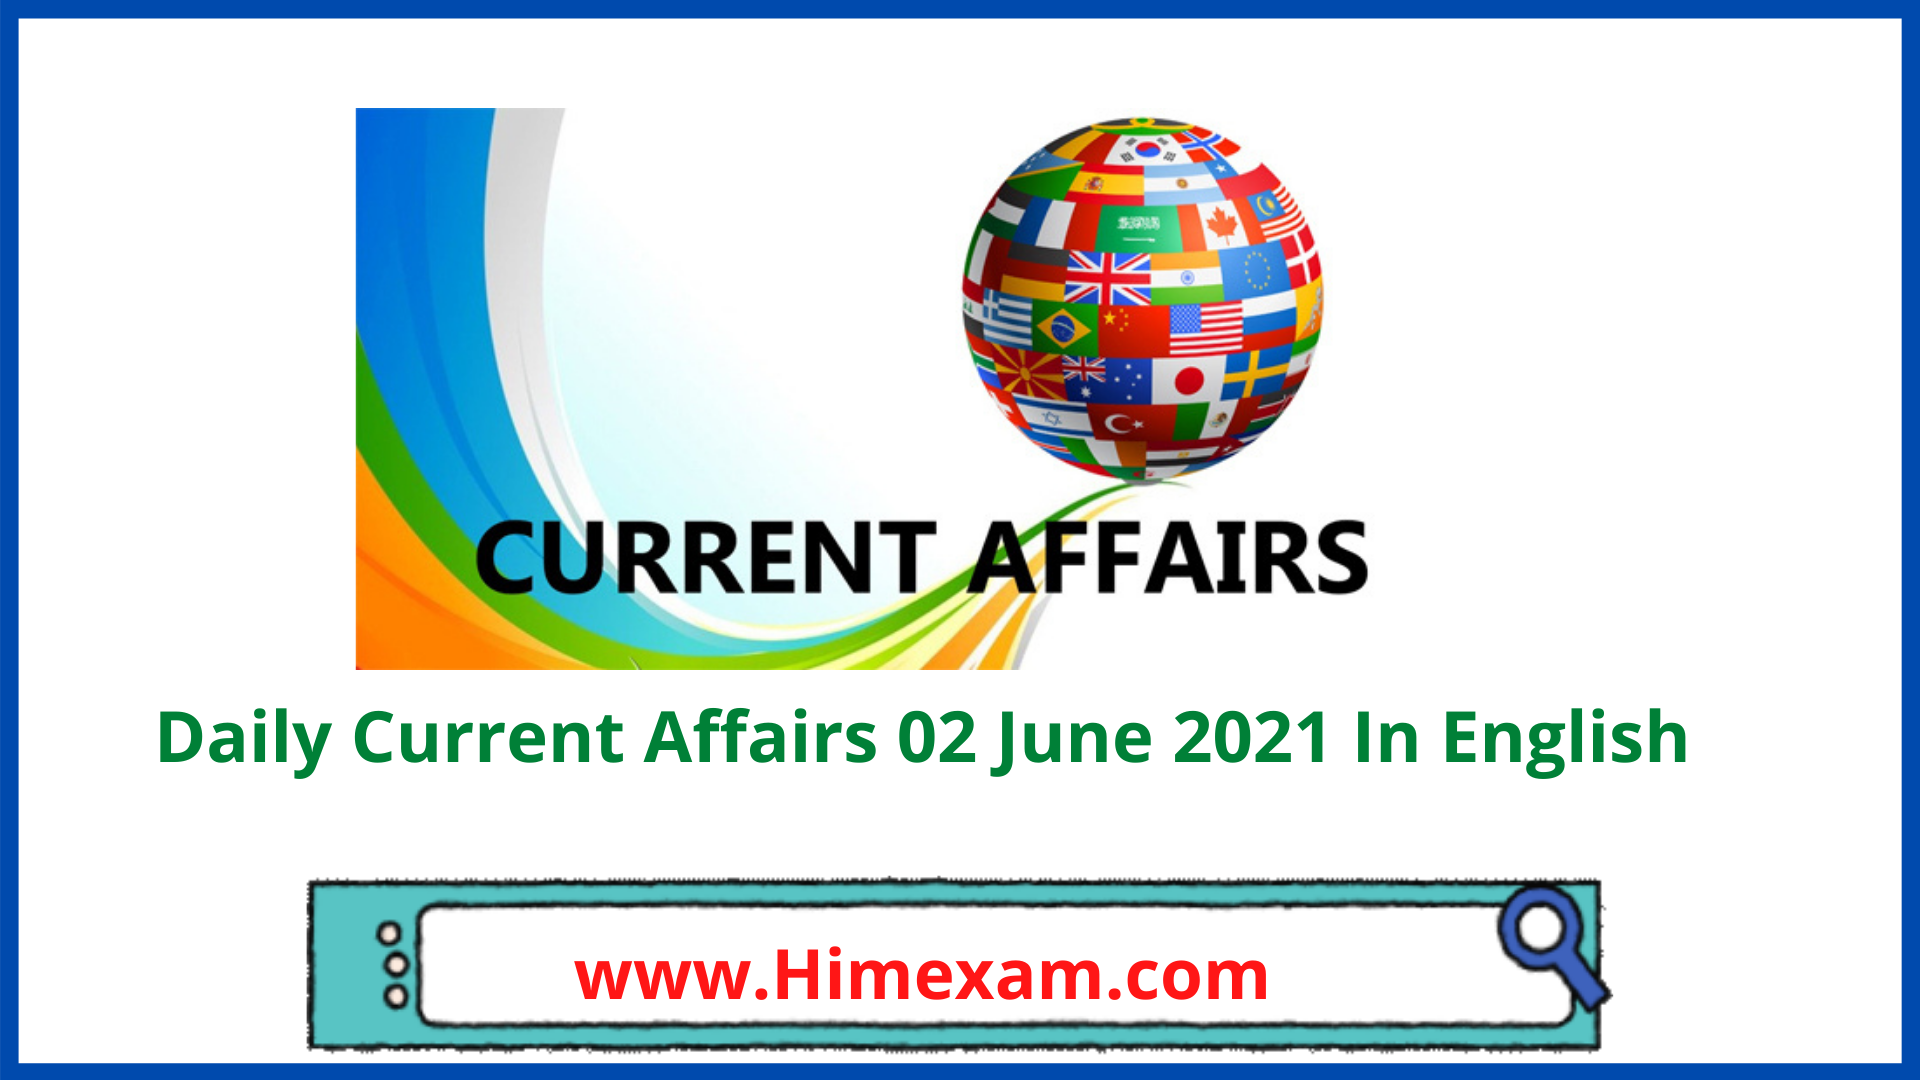 Daily Current Affairs 02 June 2021 In English